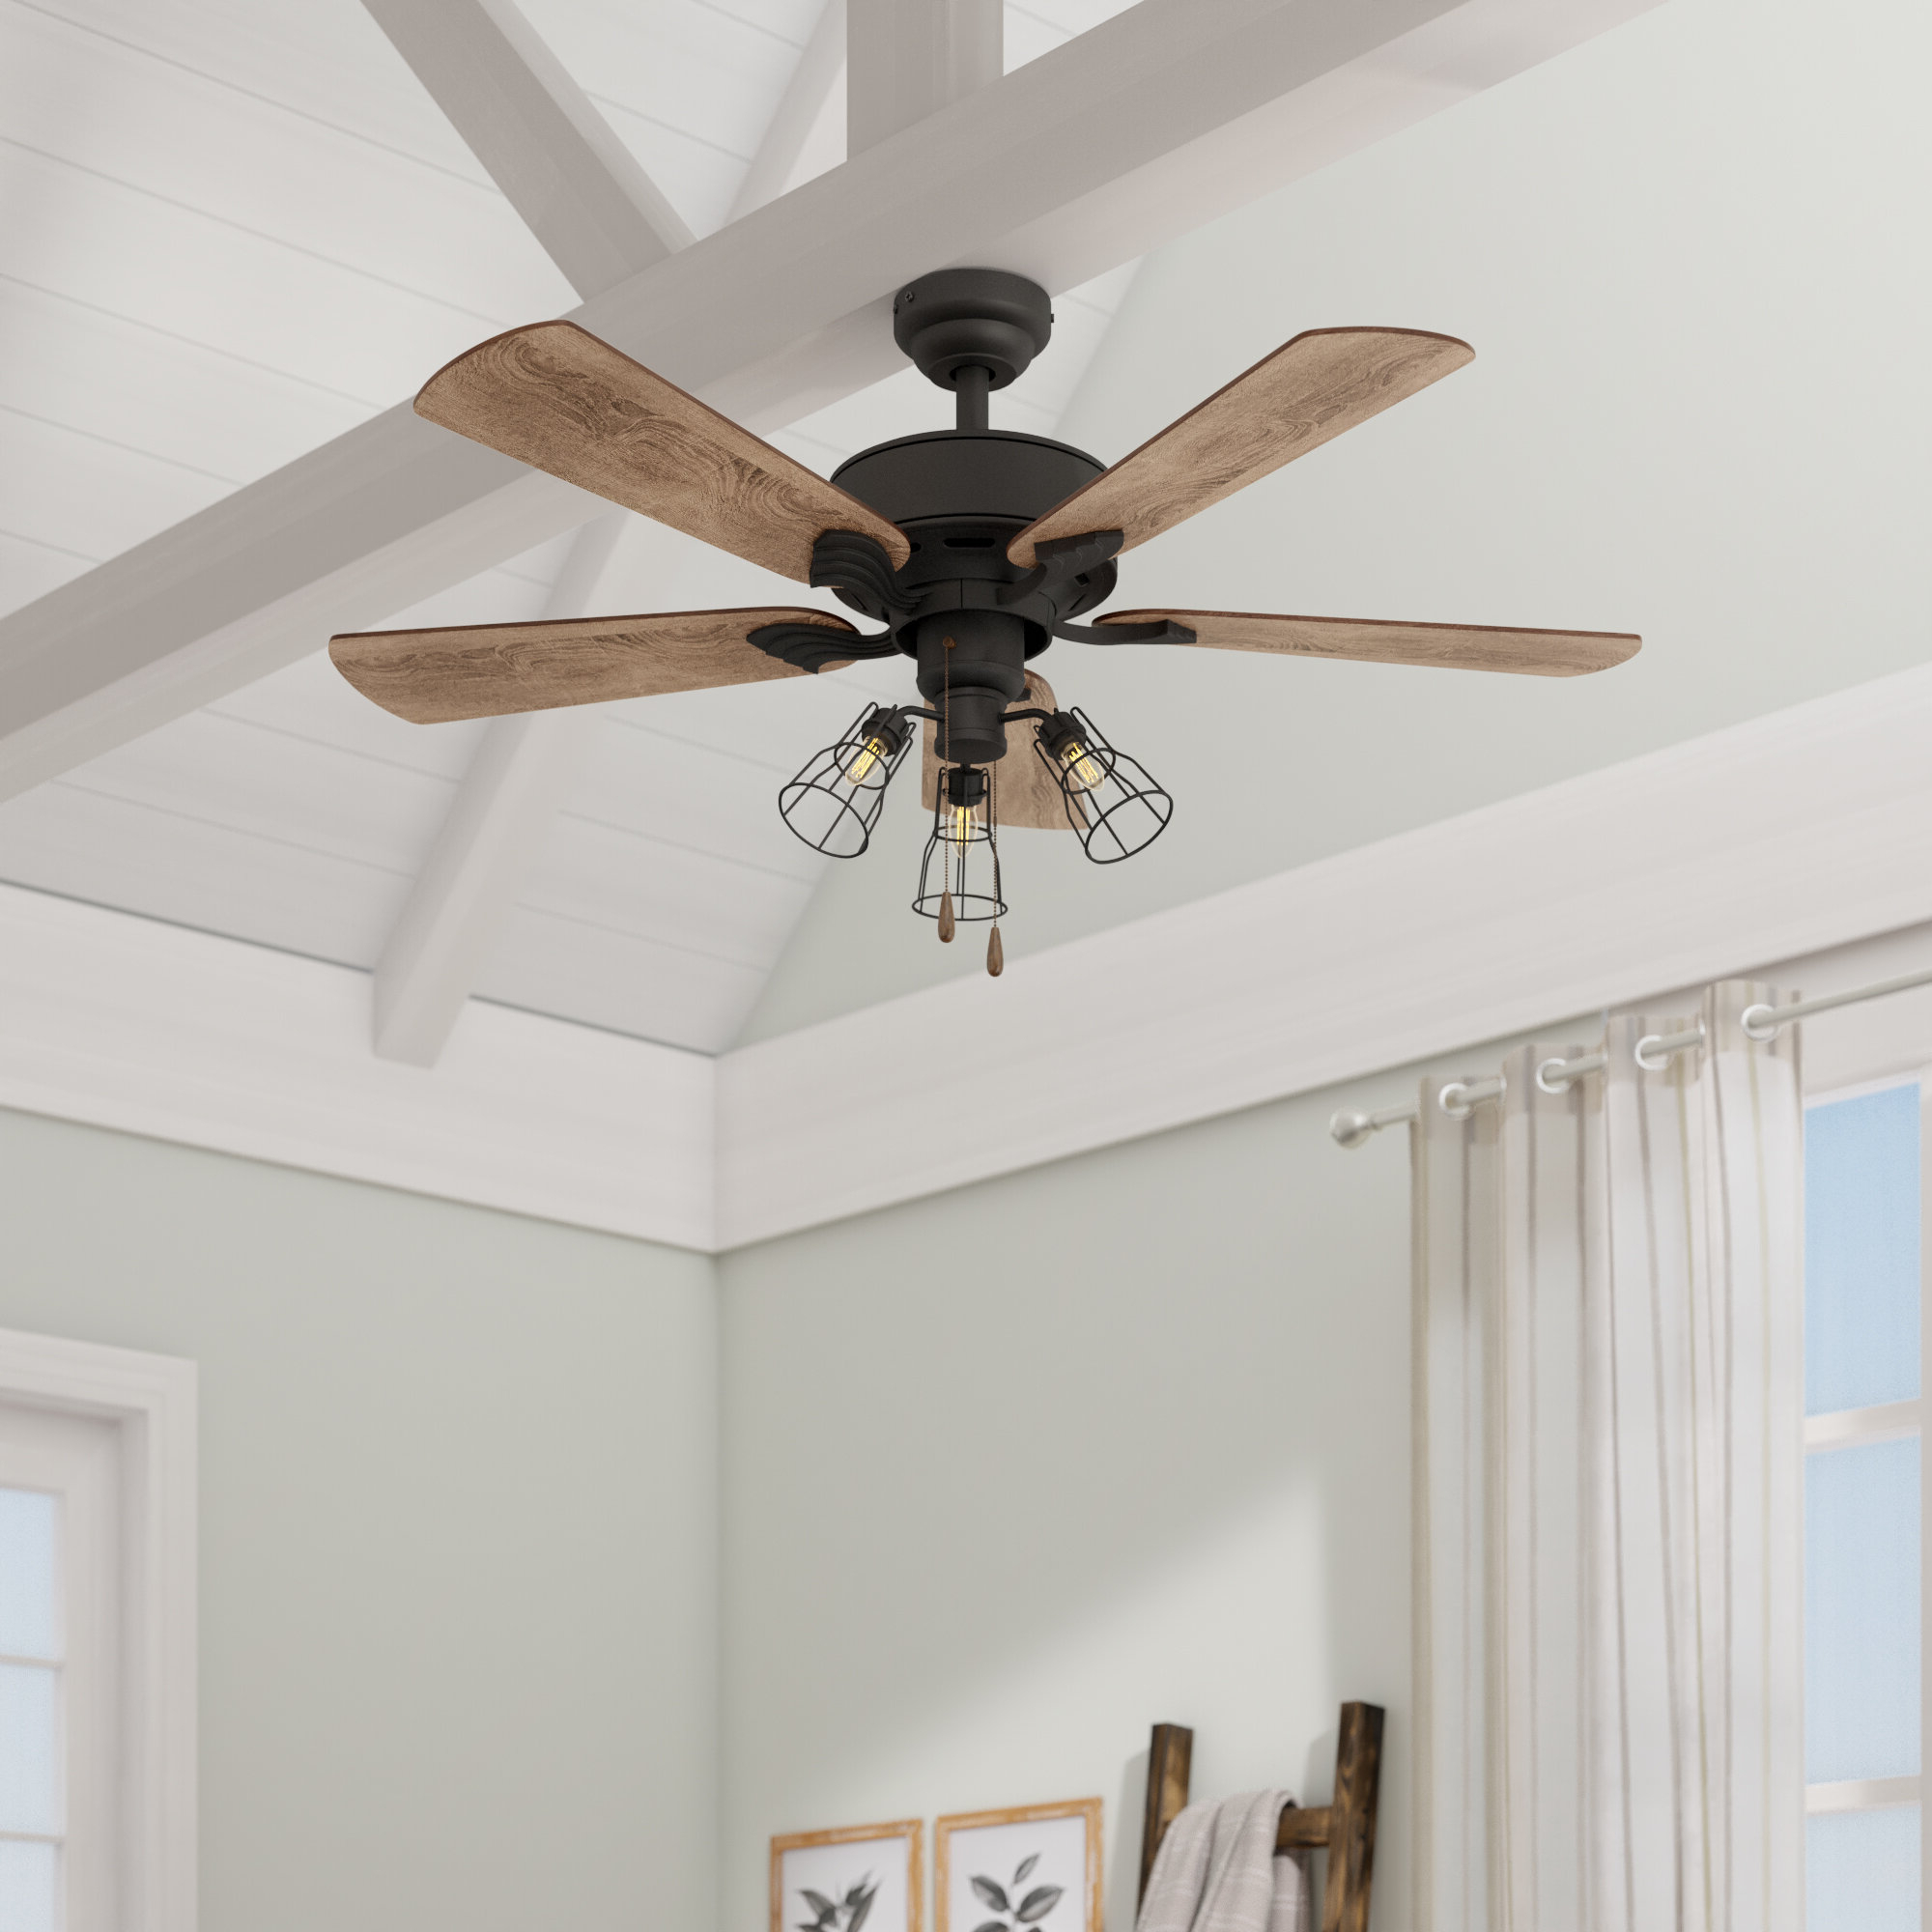 """52"""" Rankins 5 Blade Led Ceiling Fan Throughout Fashionable O'hanlon 5 Blade Led Ceiling Fans (View 2 of 20)"""